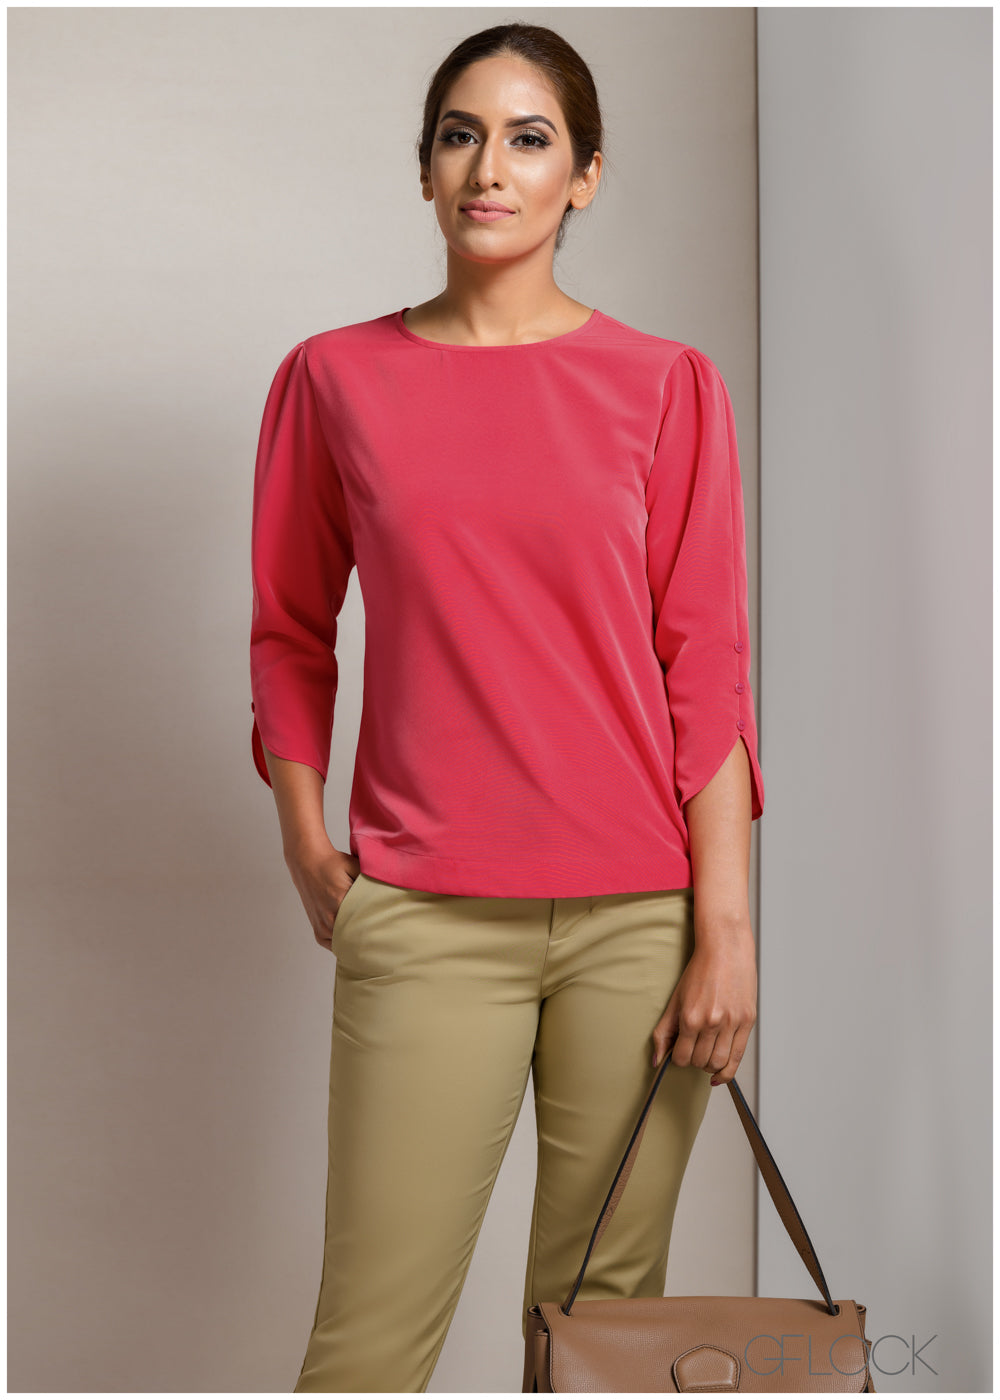 Boxy Fit Sleeve Detail Workwear Top